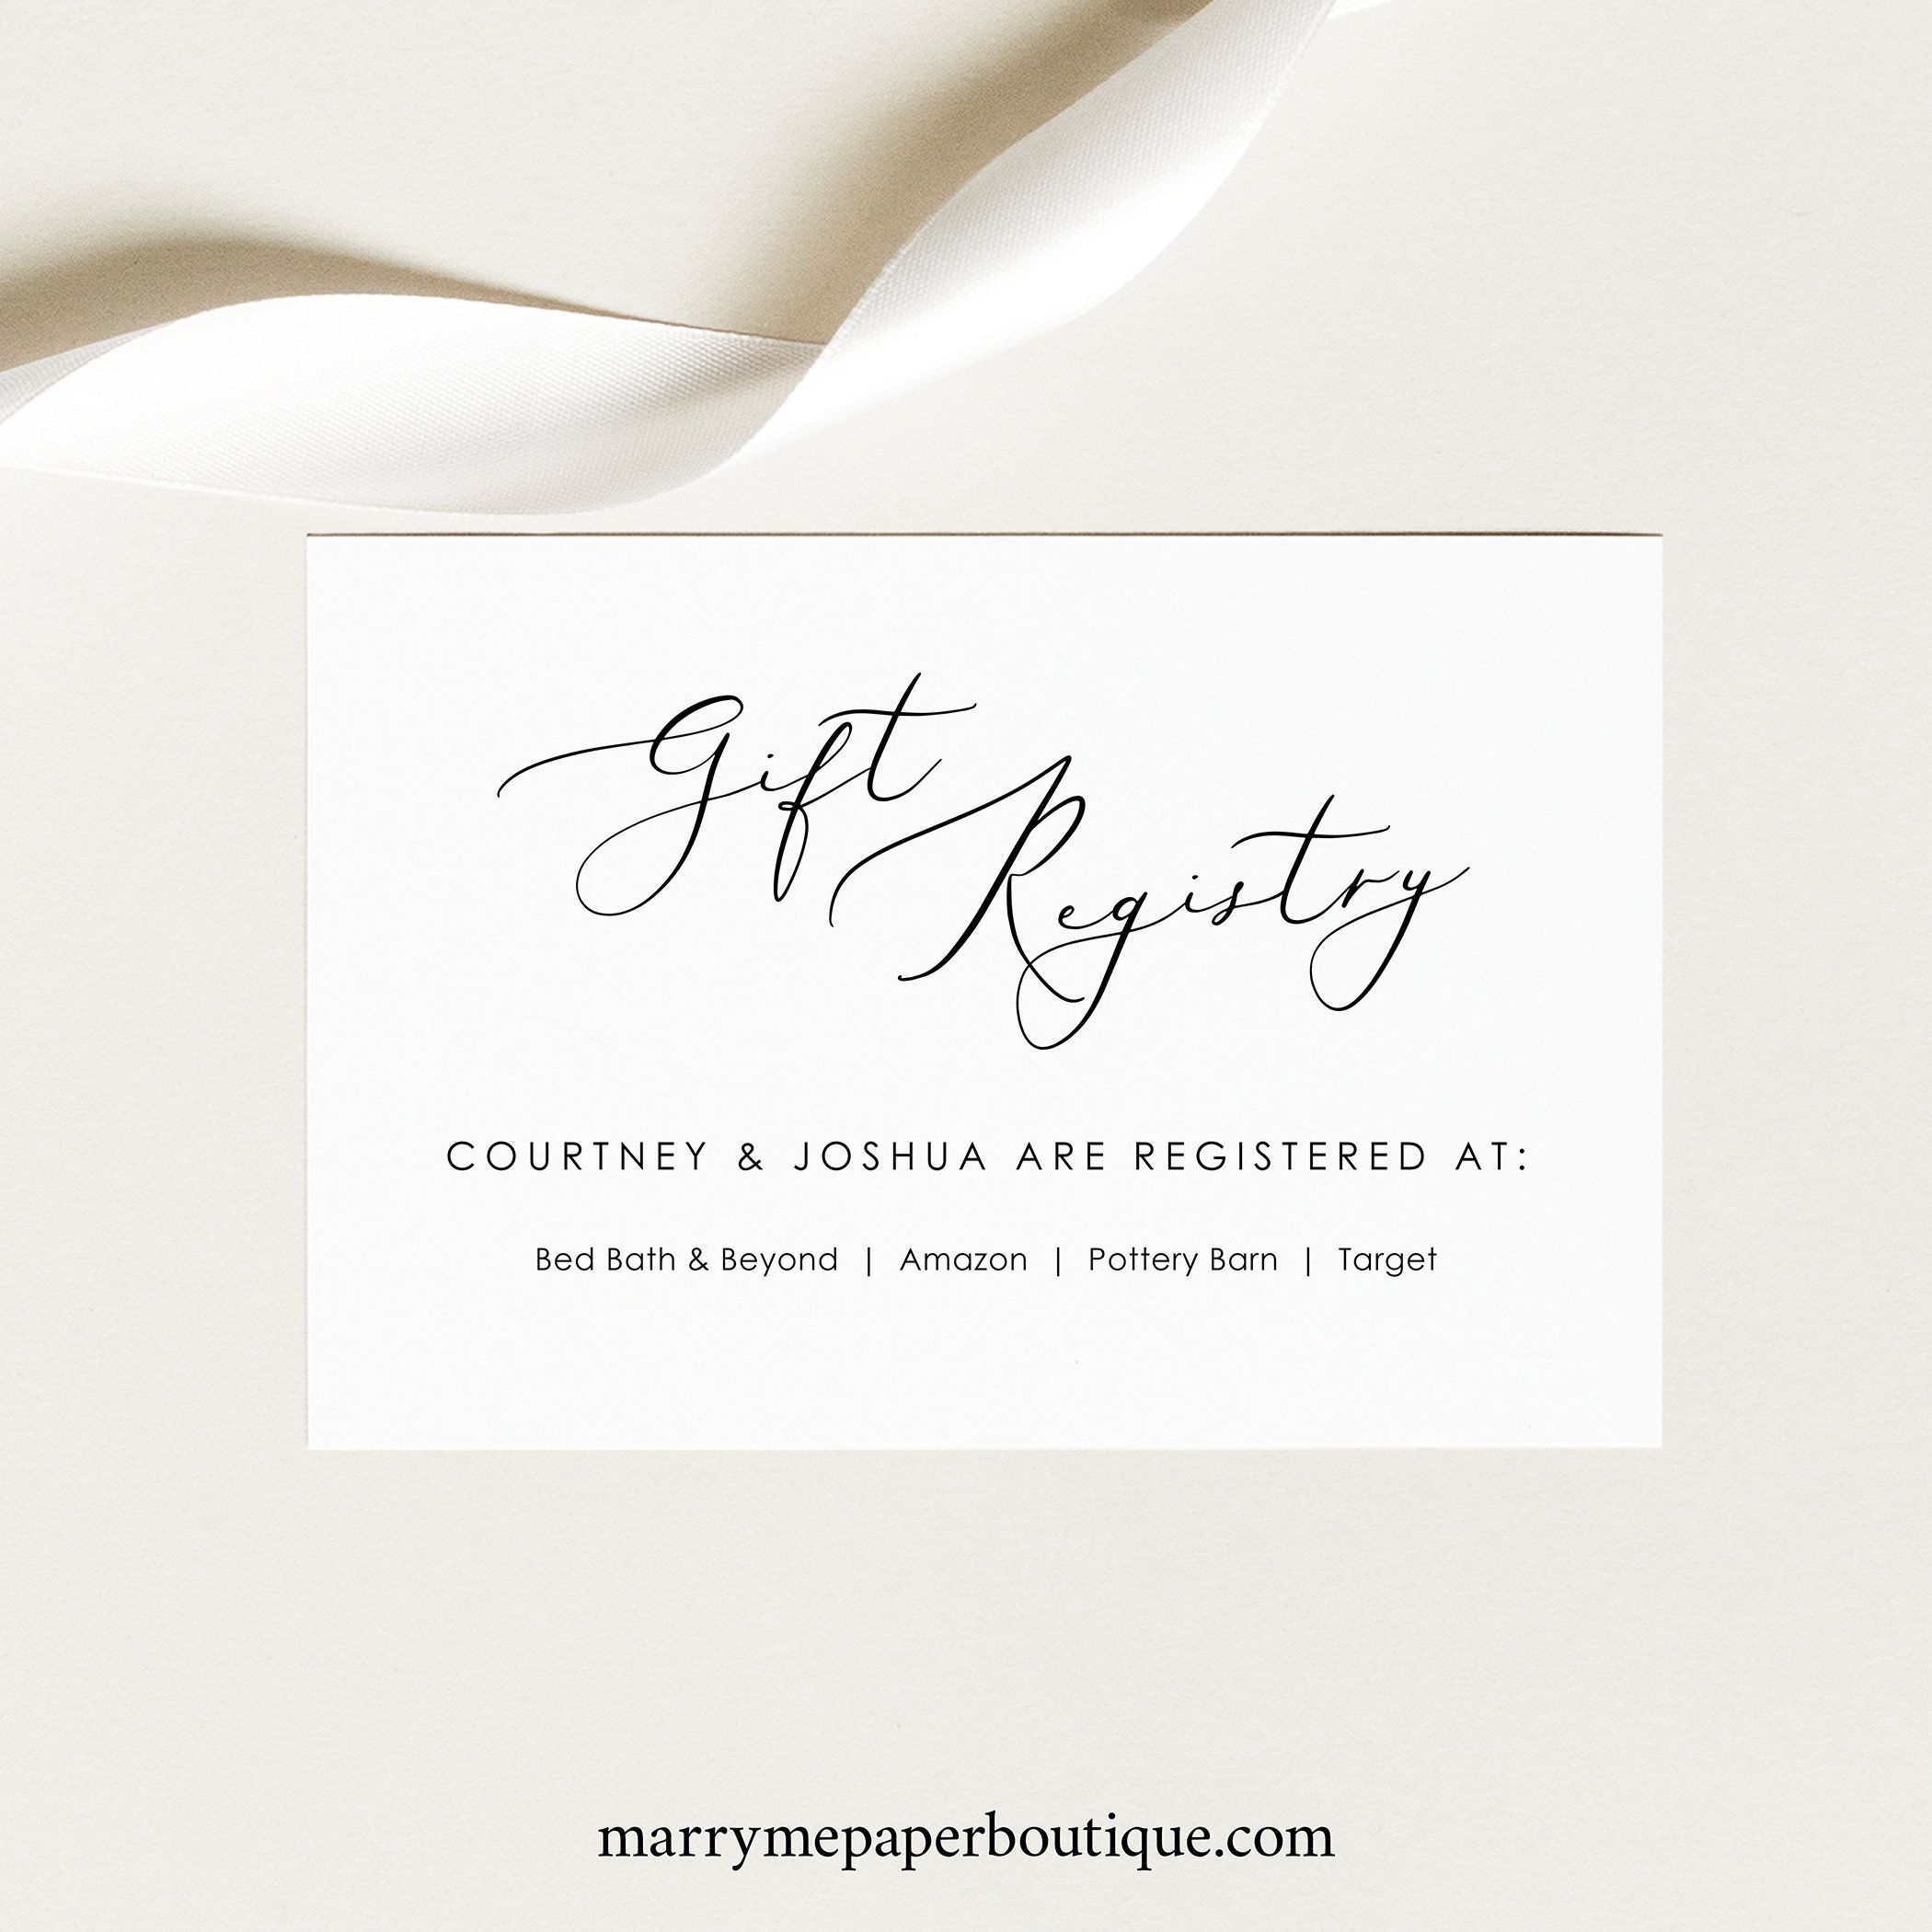 Editable Free Printable Baby Registry Cards Baby Registry Cards Baby Gift Registry Cards Registry Cards